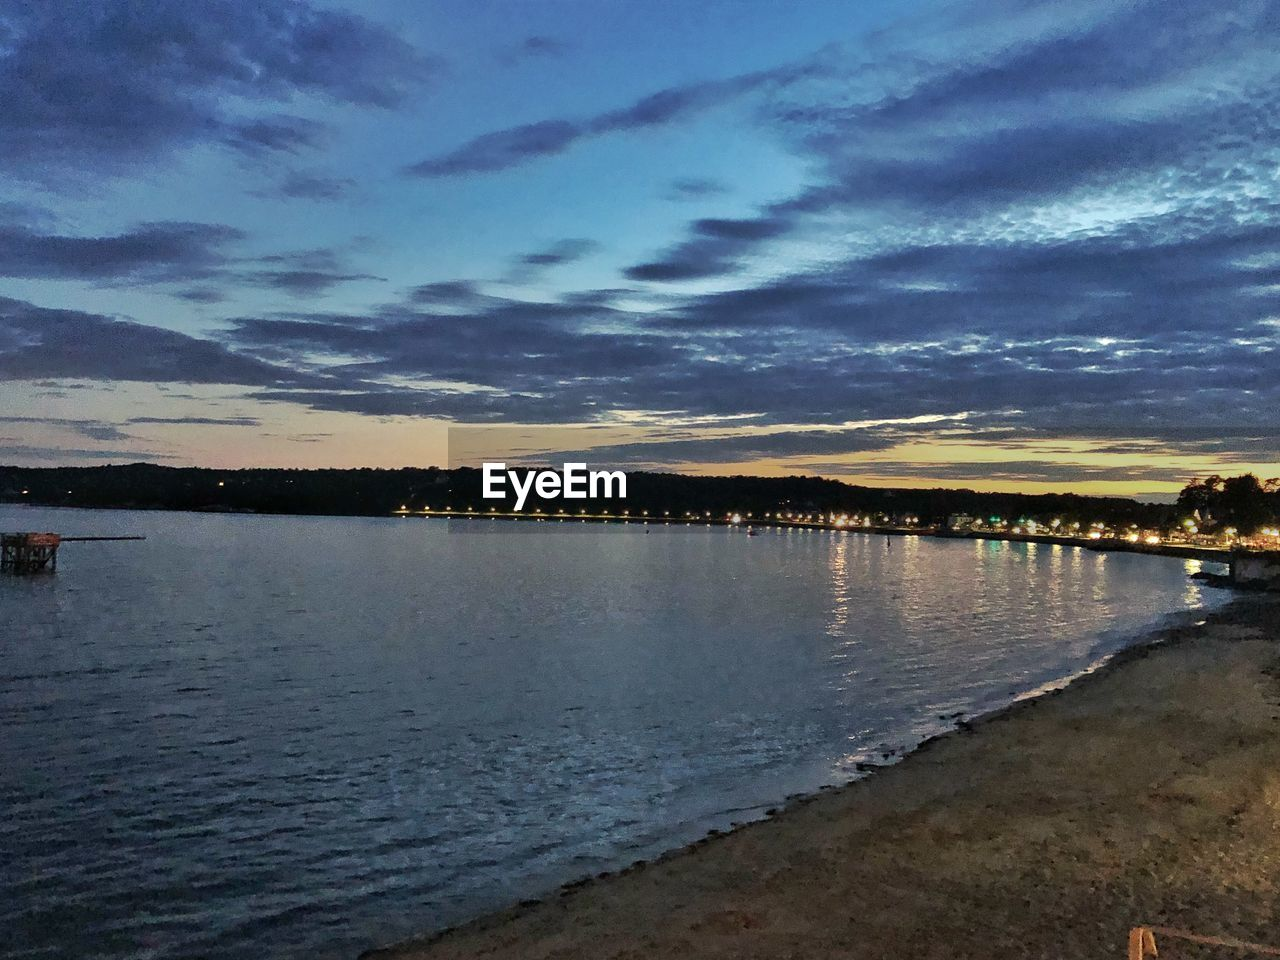 water, sky, cloud - sky, beauty in nature, scenics - nature, tranquility, tranquil scene, sunset, nature, reflection, no people, beach, sea, land, outdoors, idyllic, dusk, non-urban scene